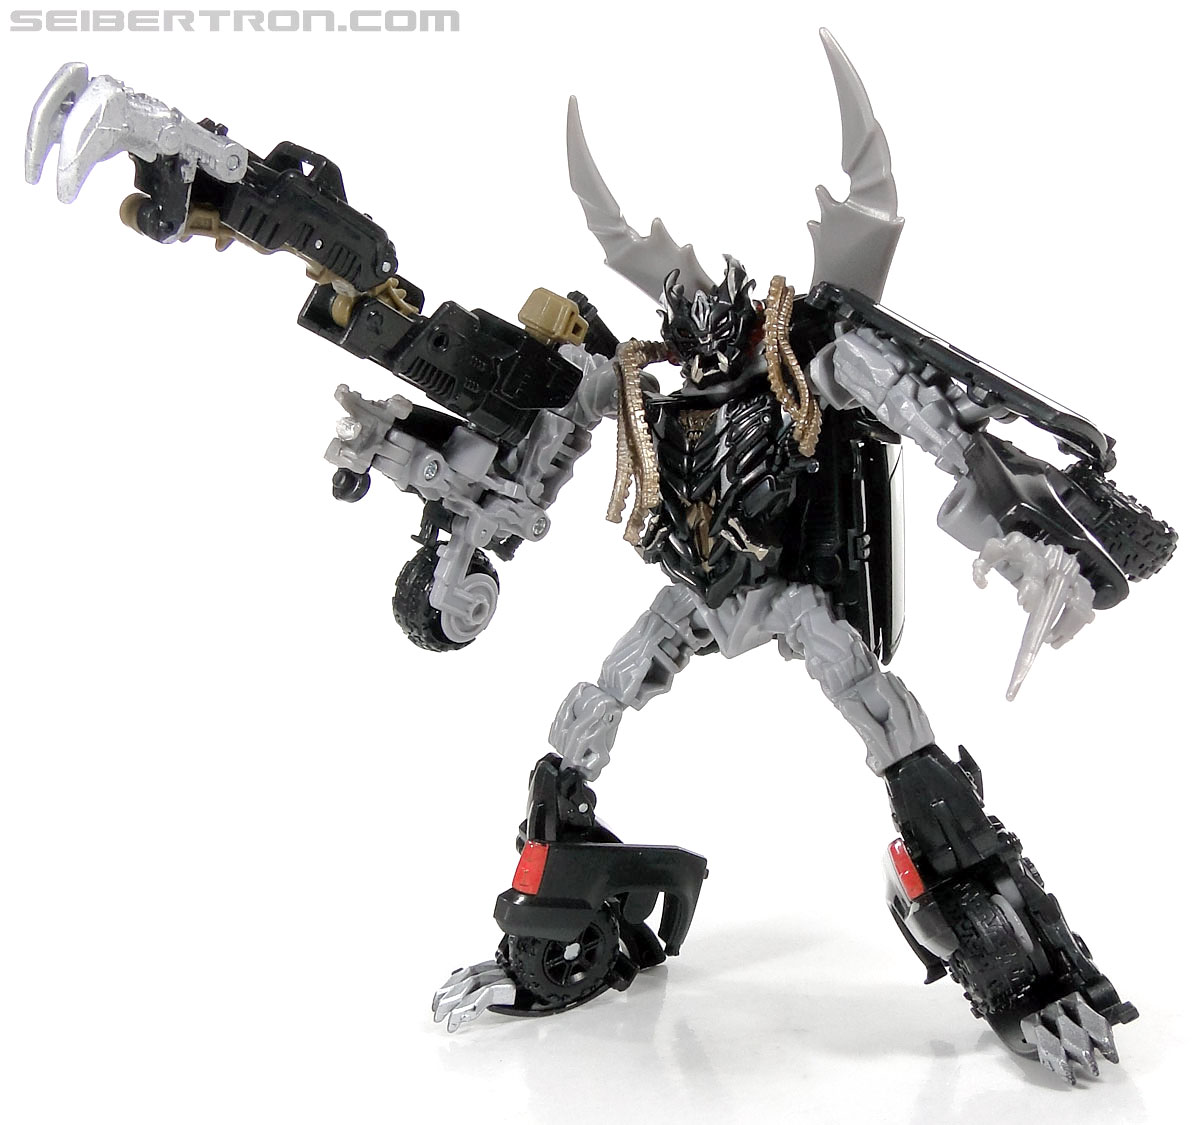 Transformers Dark of the Moon Crankcase Toy Gallery (Image ...